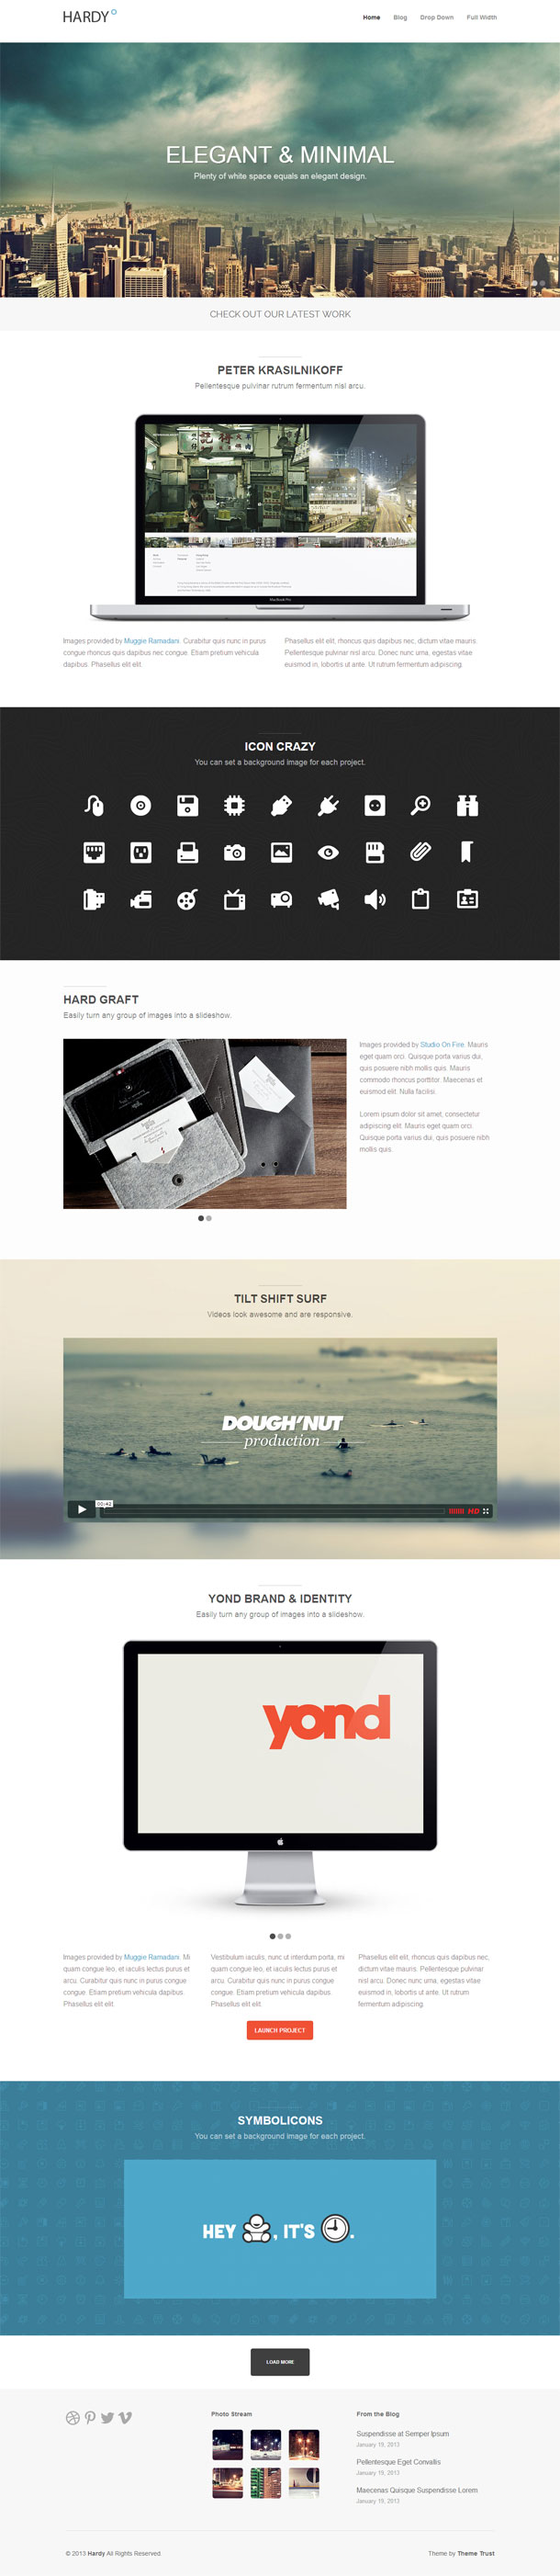 Hardy Best Responsive Theme Image